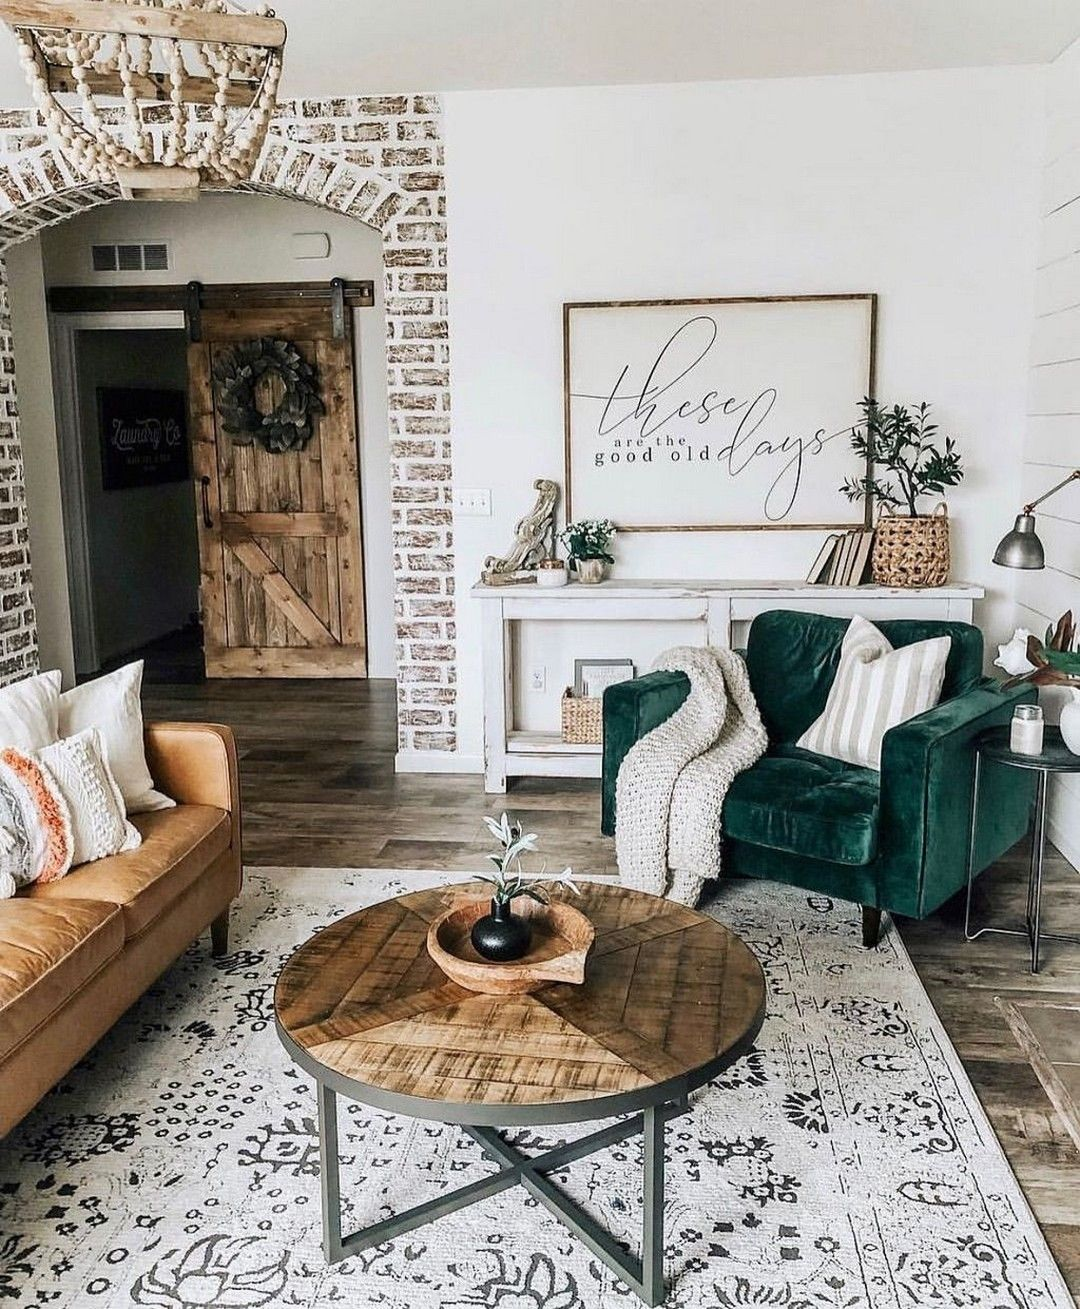 24 Trendy Reclaimed Wood Furniture And Decor Ideas For Living Green Farm House Living Room Home Living Room Living Room Inspiration Wood living room decor